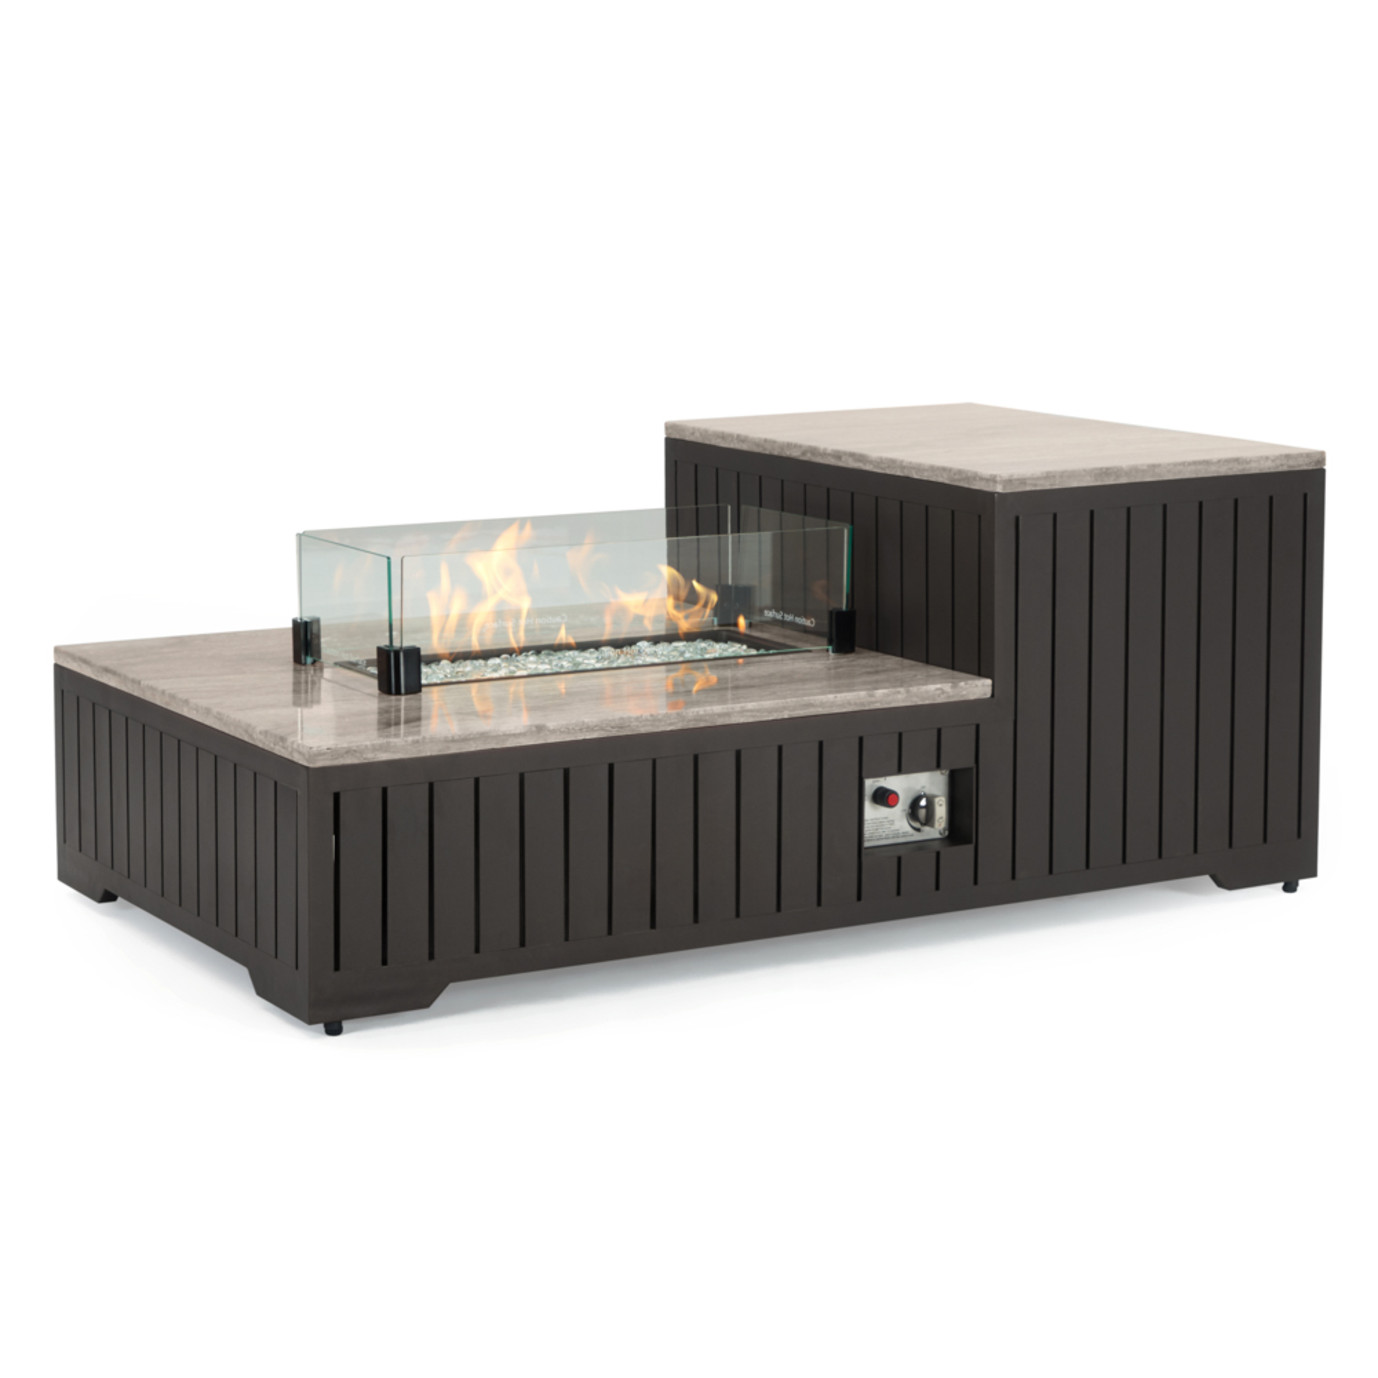 Portofino® Comfort 56x31 Stone Fire Pit Table